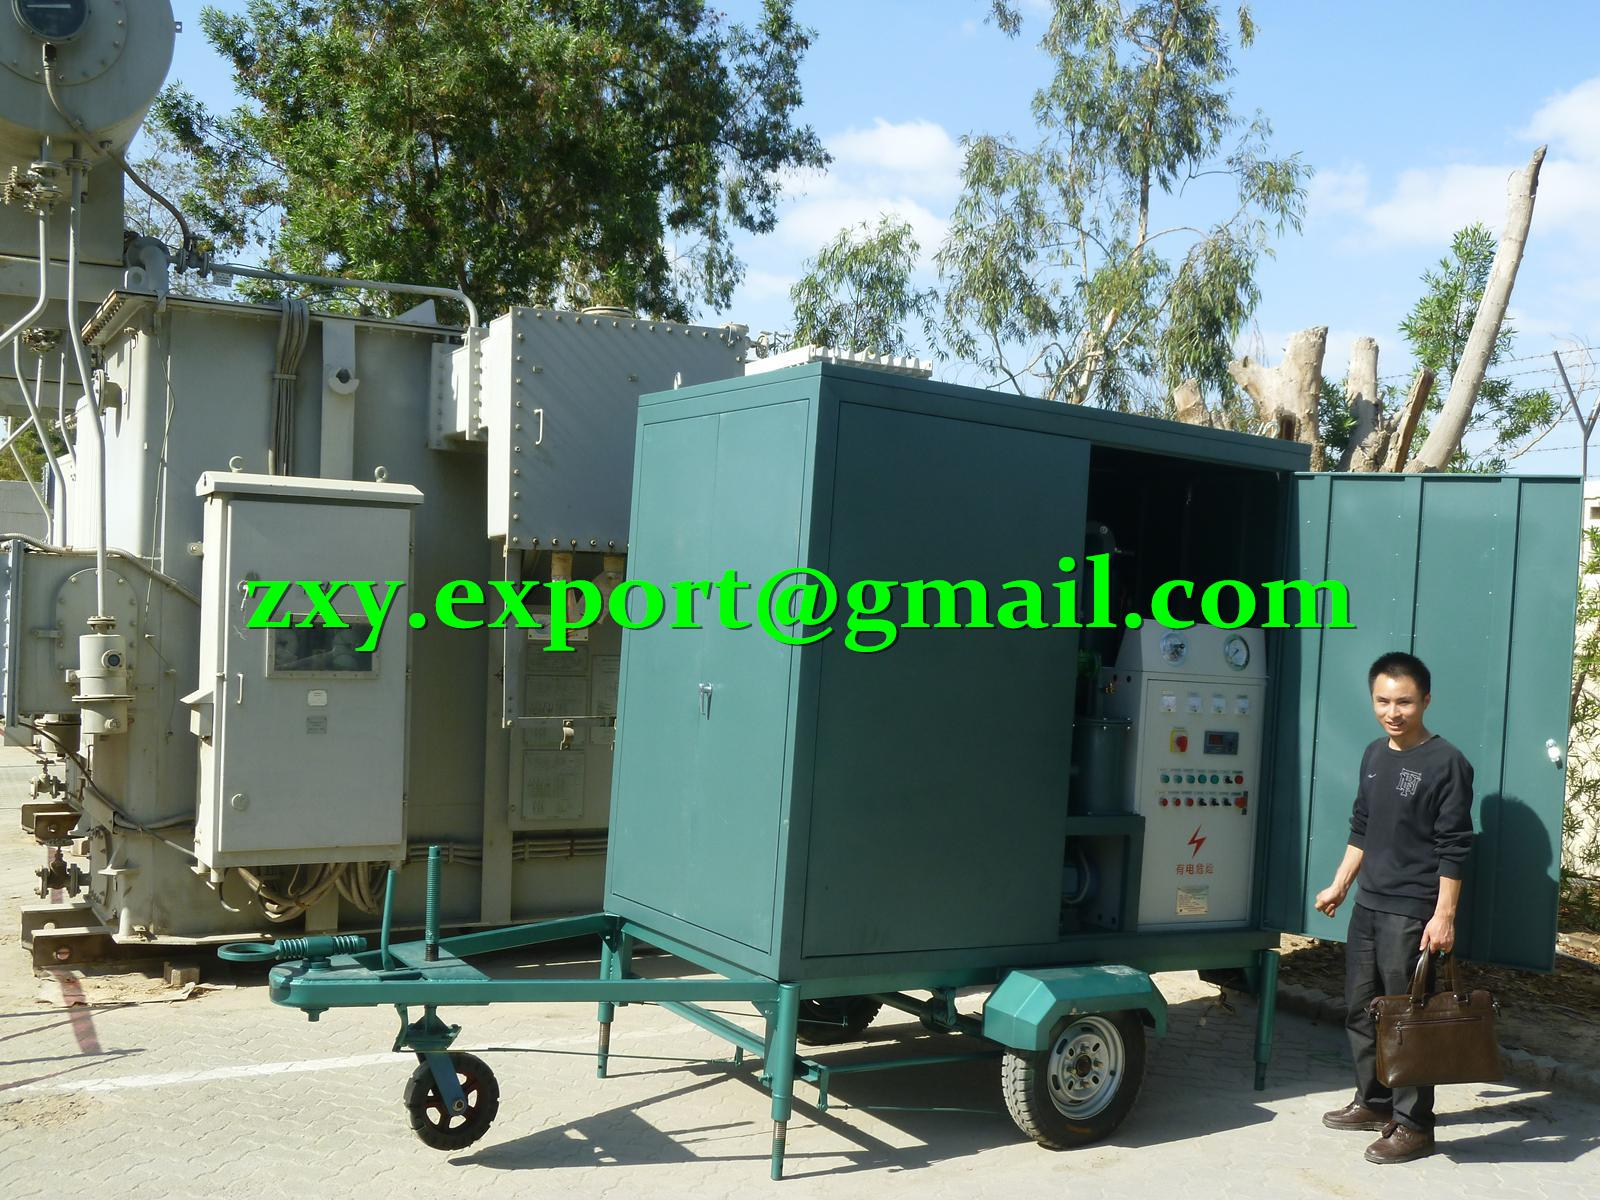 TRAILER-MOUNTED Onsite Transformer Oil Purification & Oil Dehydration System